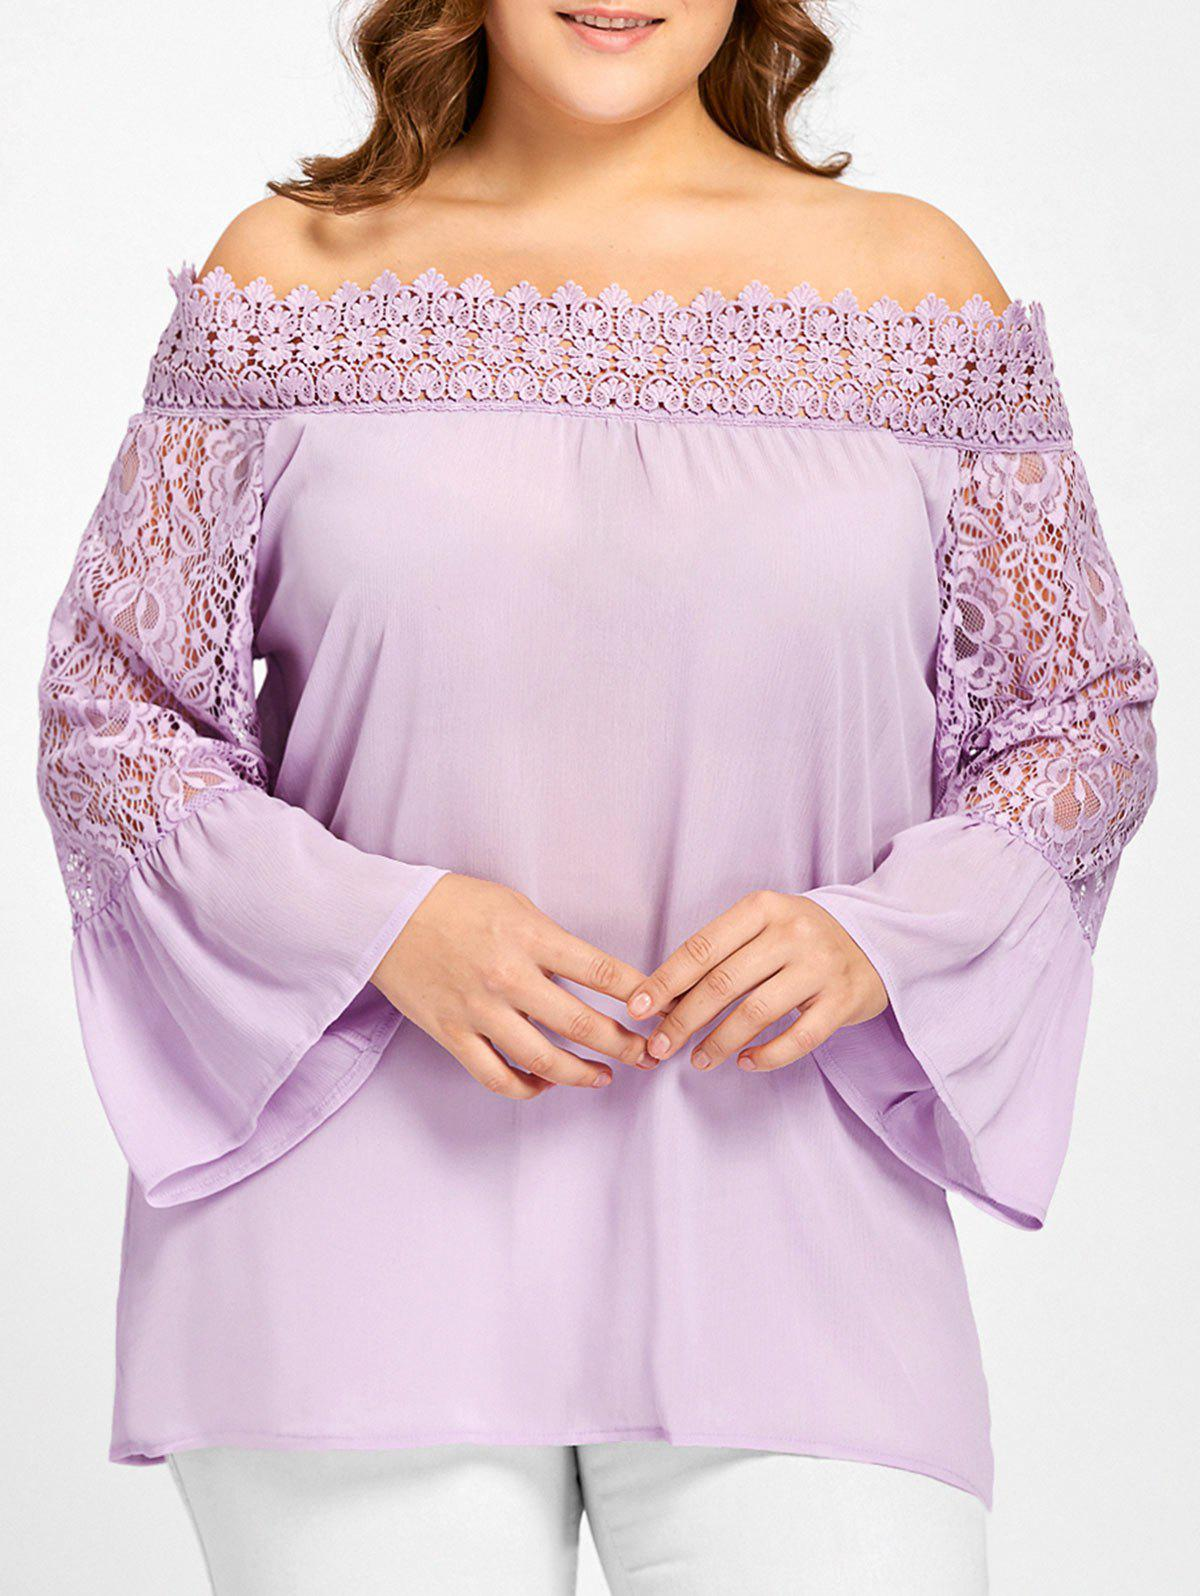 Plus Size Lace Panel Off The Shoulder BlouseWOMEN<br><br>Size: XL; Color: LIGHT PURPLE; Material: Polyester; Shirt Length: Regular; Sleeve Length: Full; Collar: Off The Shoulder; Style: Fashion; Season: Fall; Embellishment: Lace; Pattern Type: Solid; Weight: 0.2000kg; Package Contents: 1 x Blouse;